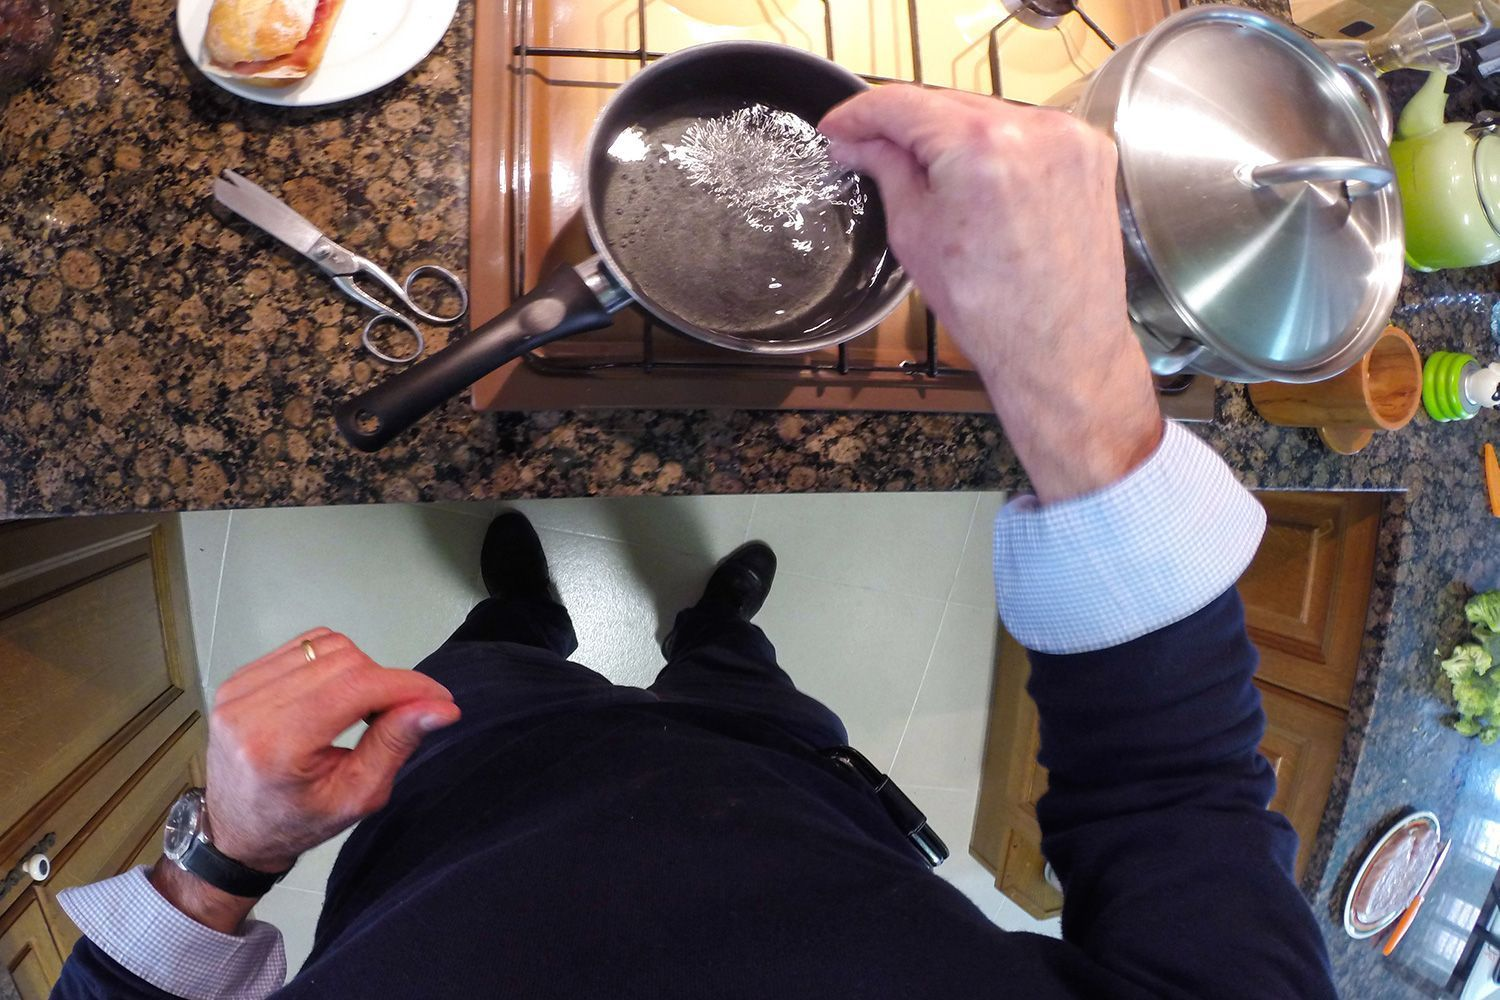 Here's what happens when you add salt to boiling water